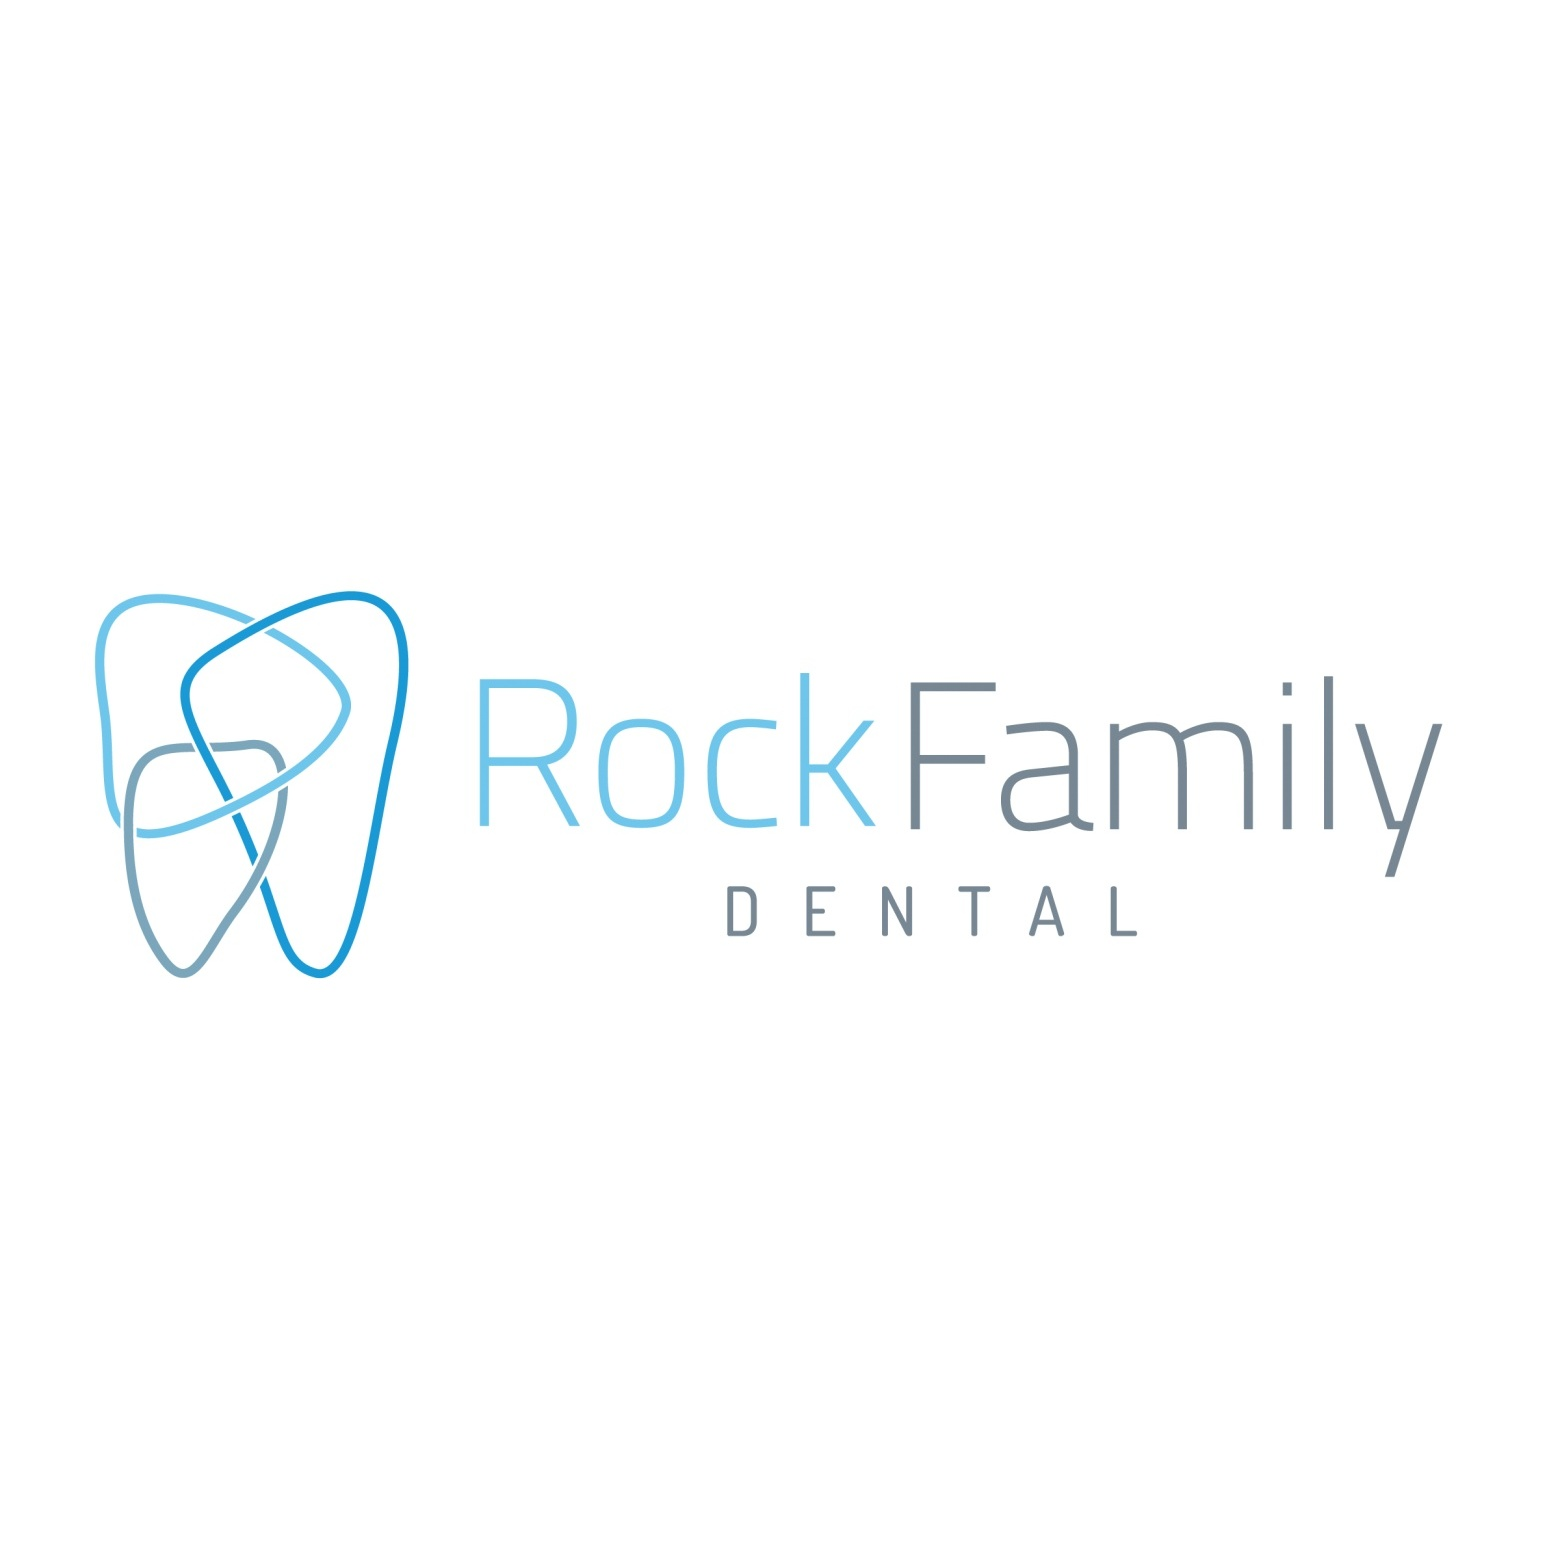 Rock Family Dental - Little Rock - Little Rock, AR - Dentists & Dental Services